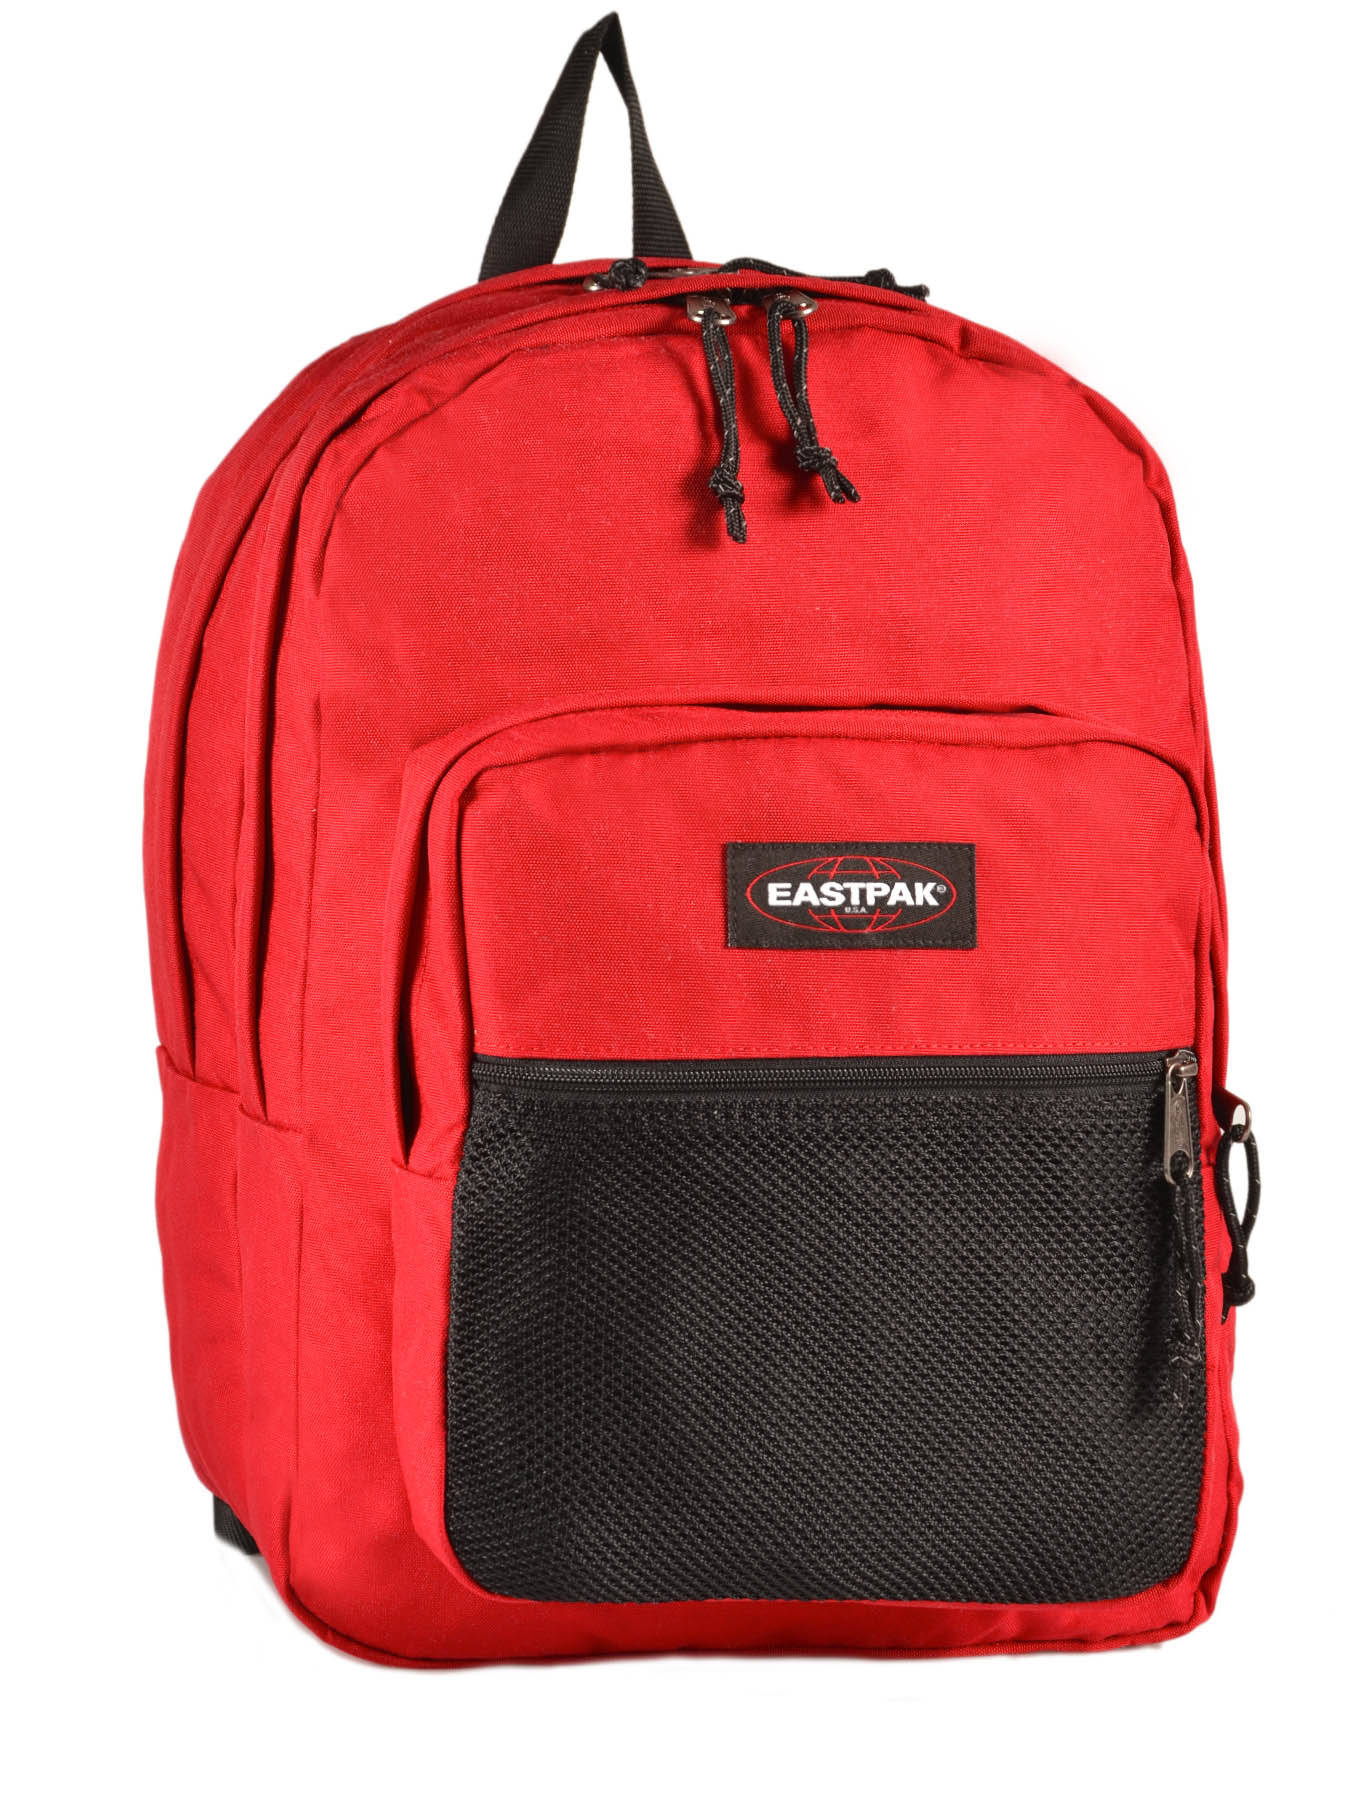 Sur Pick Red Eastpak Sac Apple Pinnacle À Dos f86A4qR